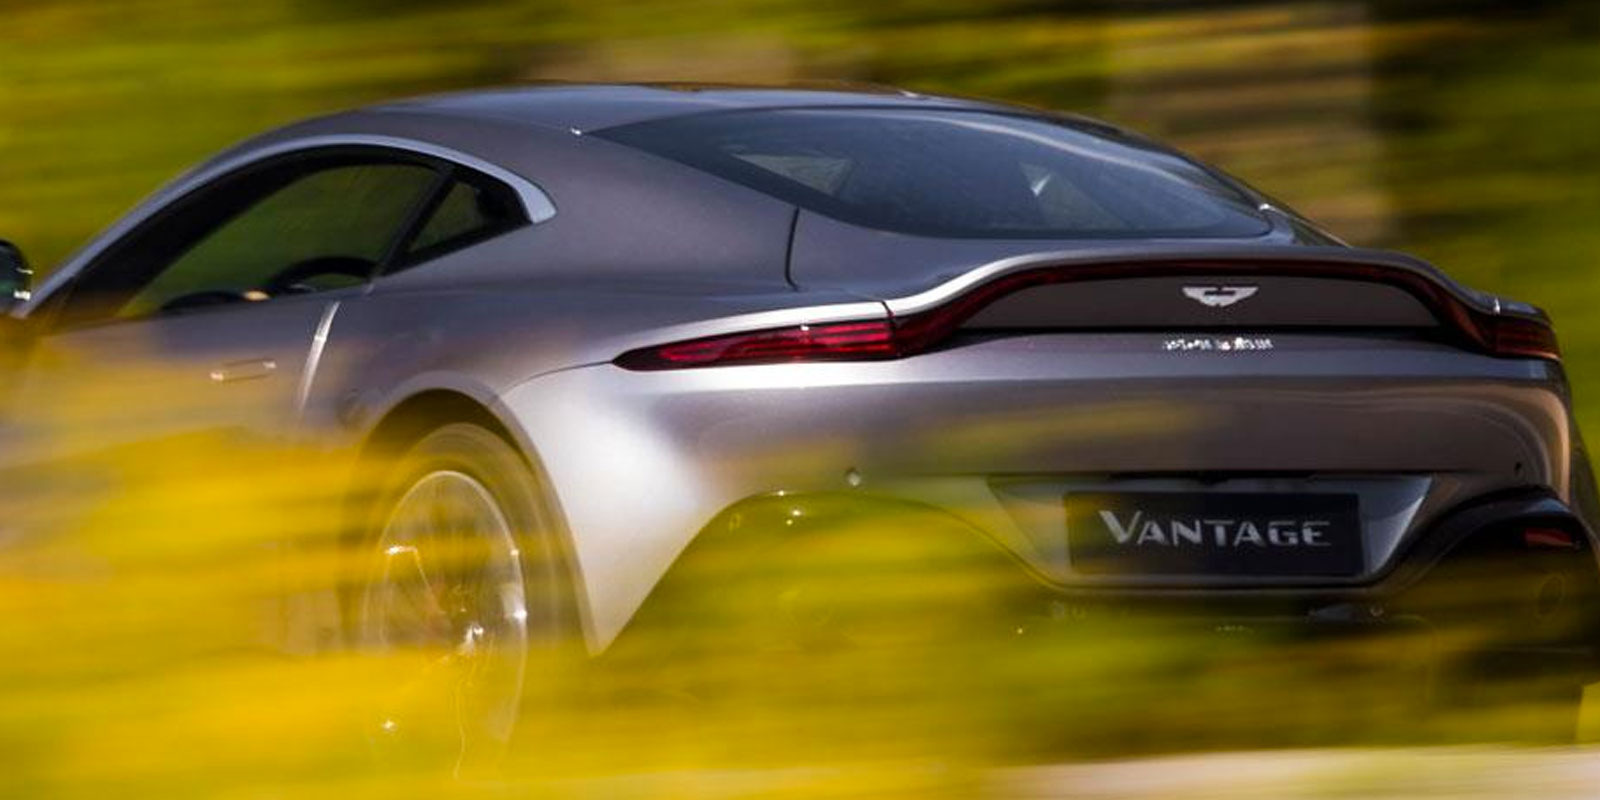 Aston Martin New Vantage - The Archetypal Hunter image 4